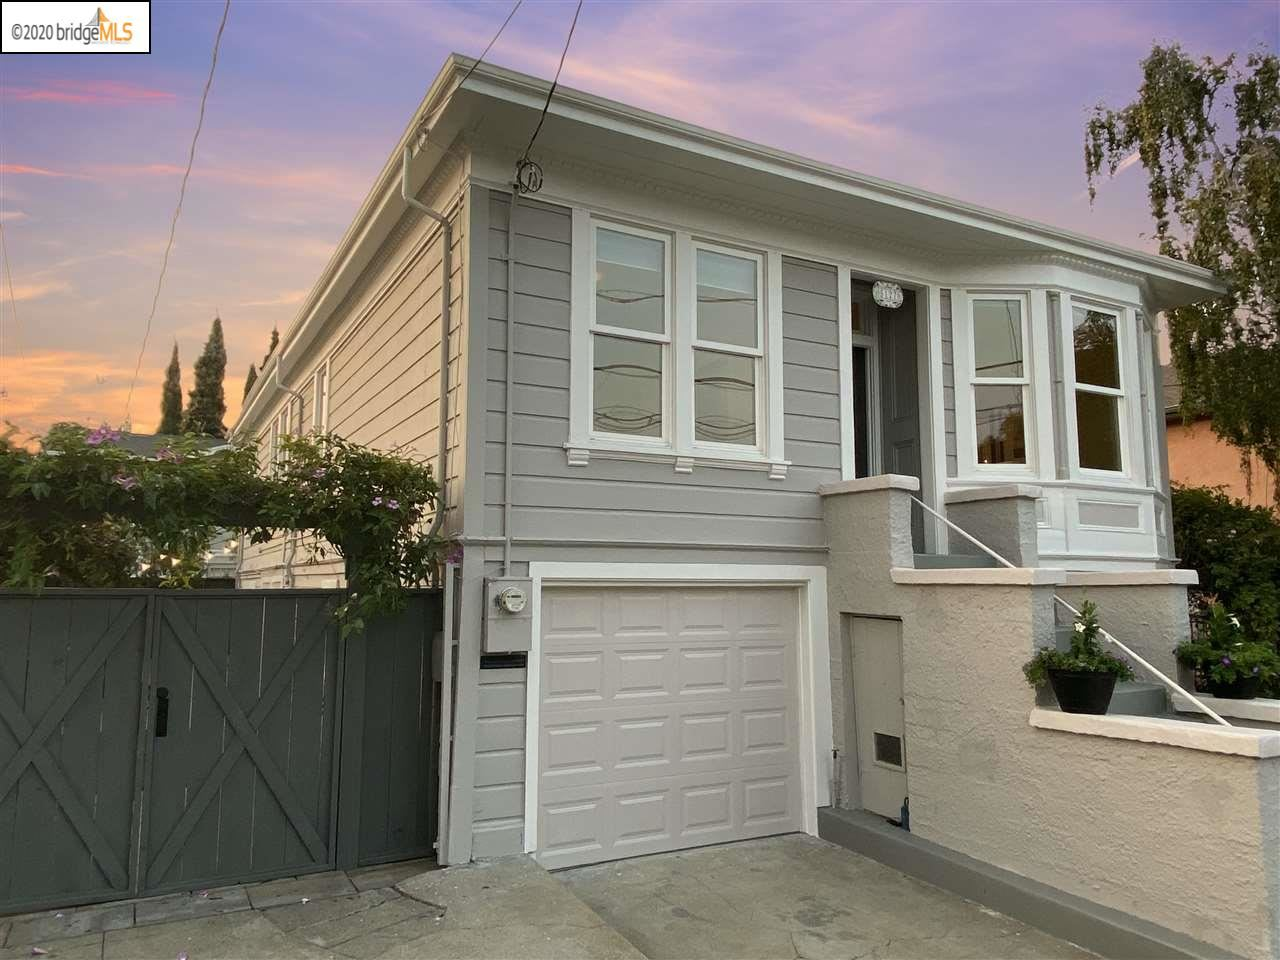 Photo for 5127 Lawton Ave, OAKLAND, CA 94618 (MLS # 40921159)